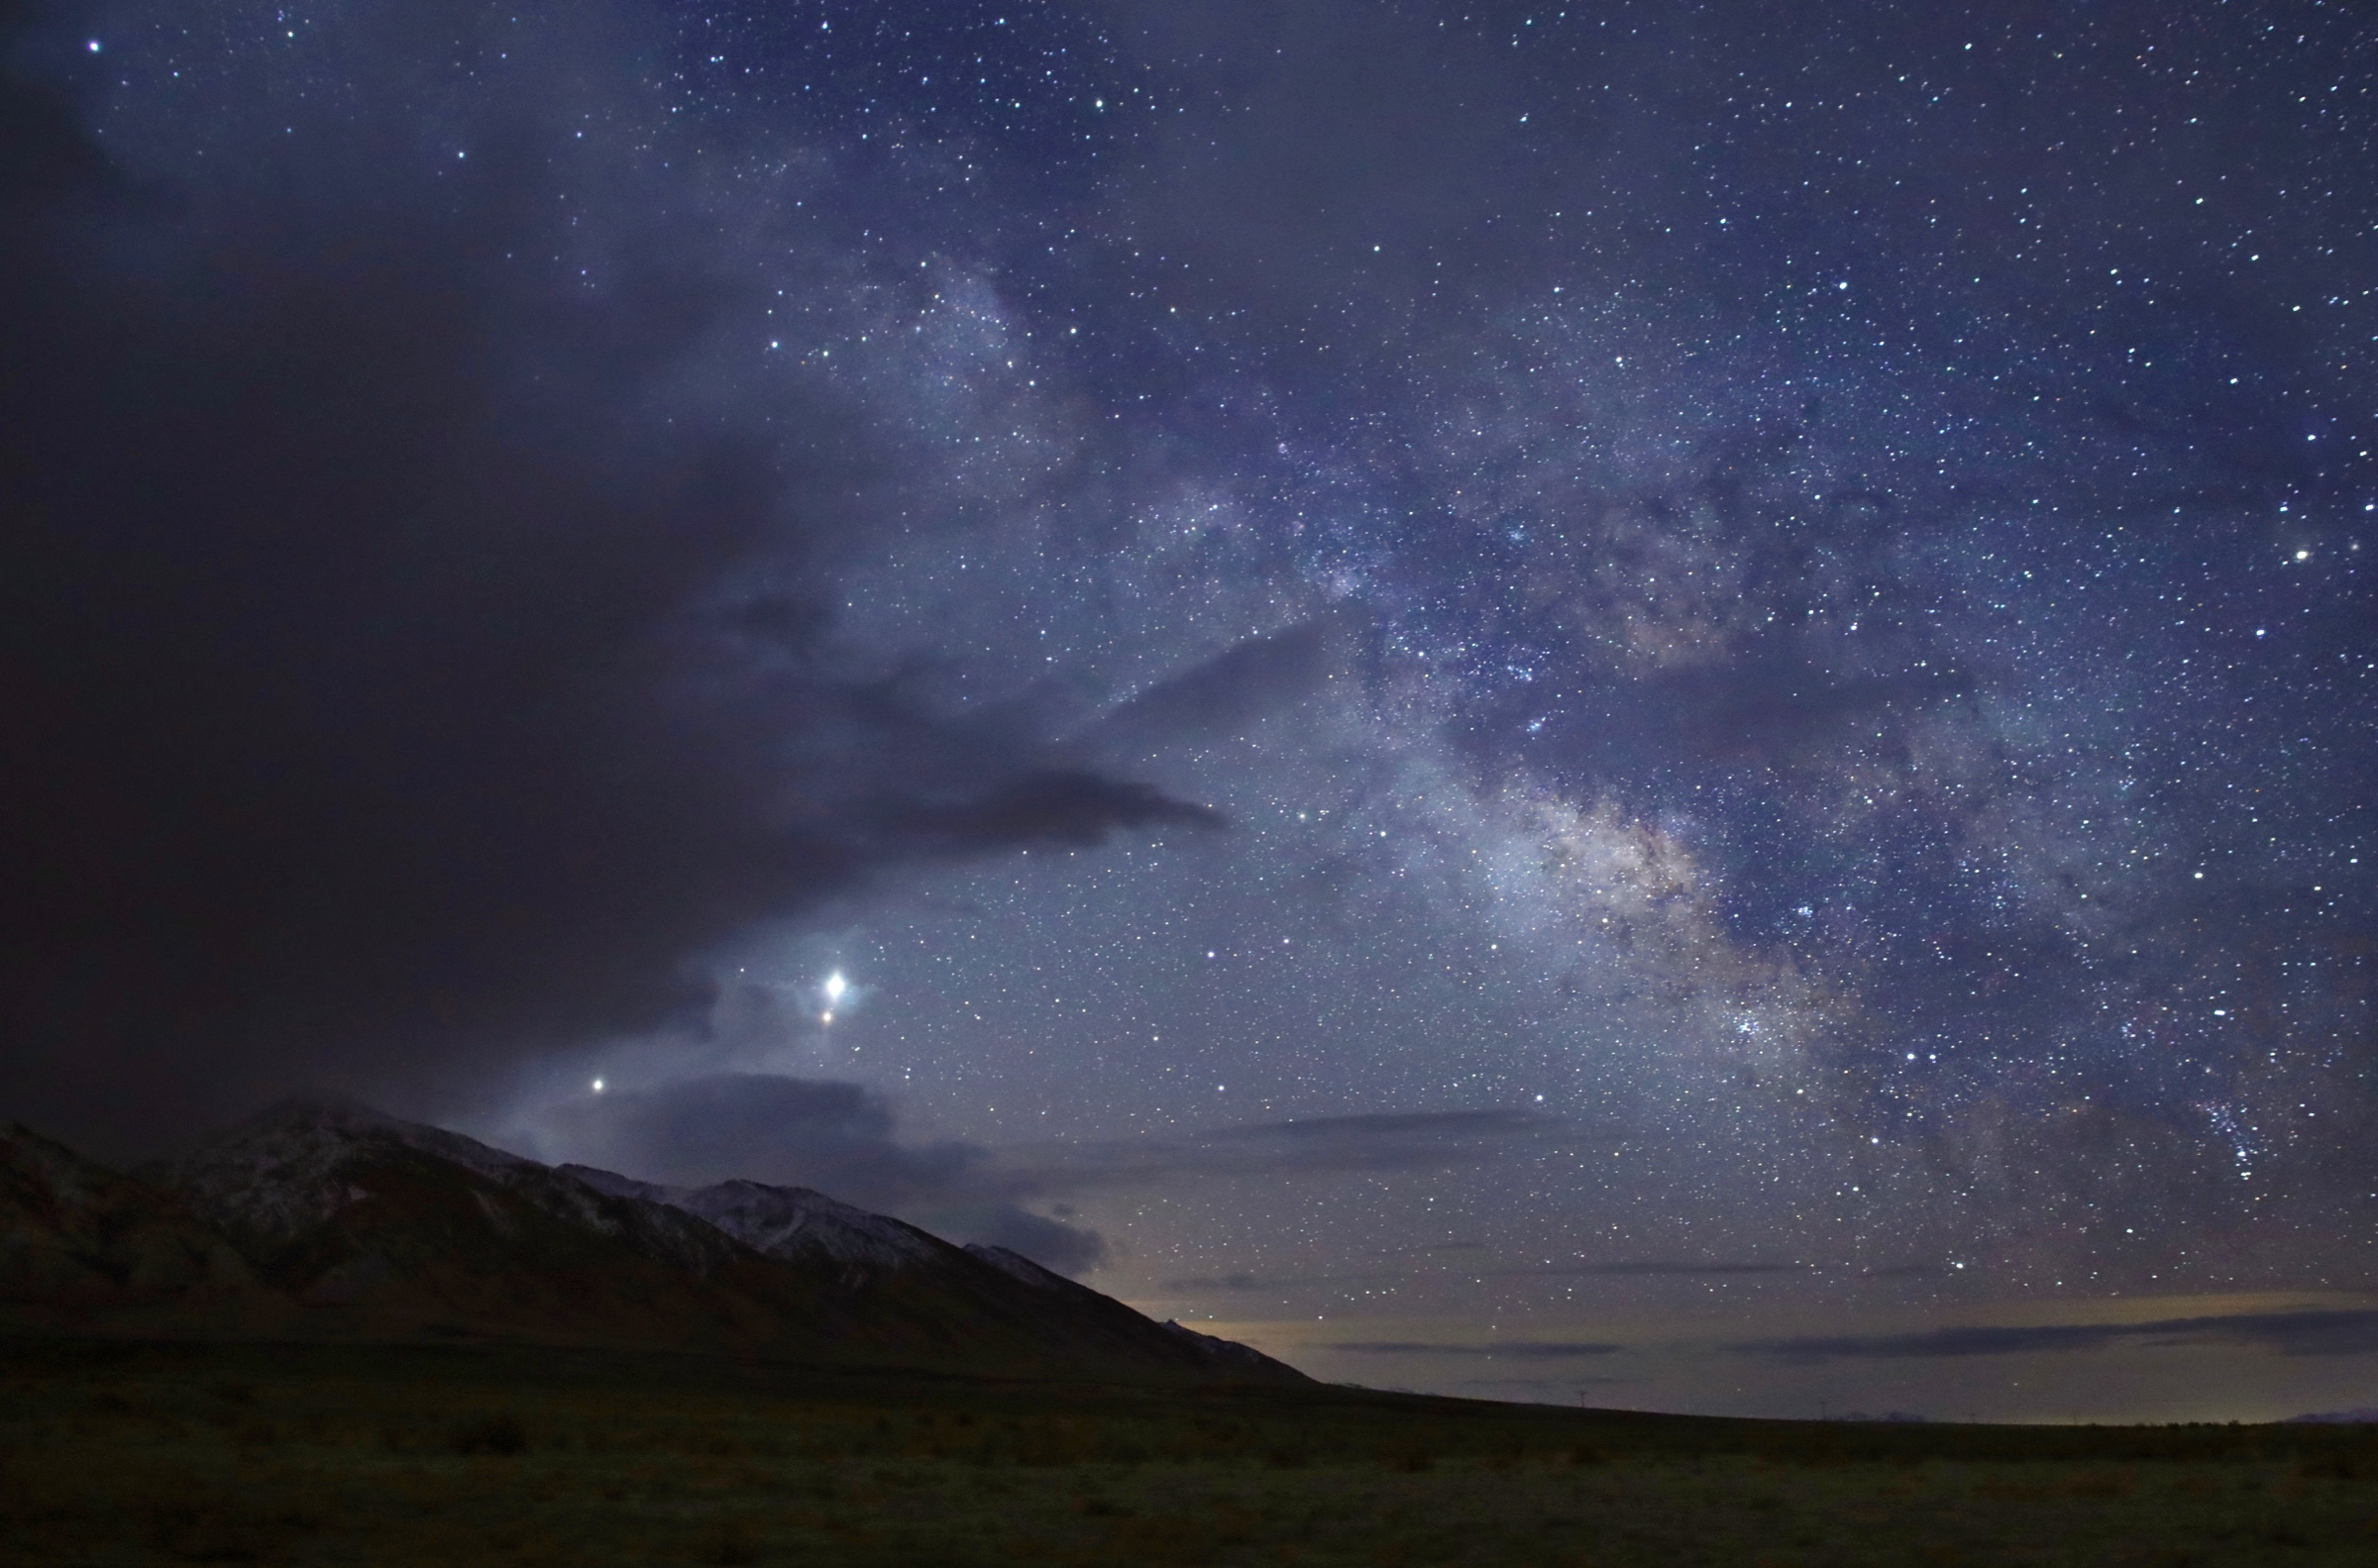 milky way rising above a mountain with three planets visible as bright stars